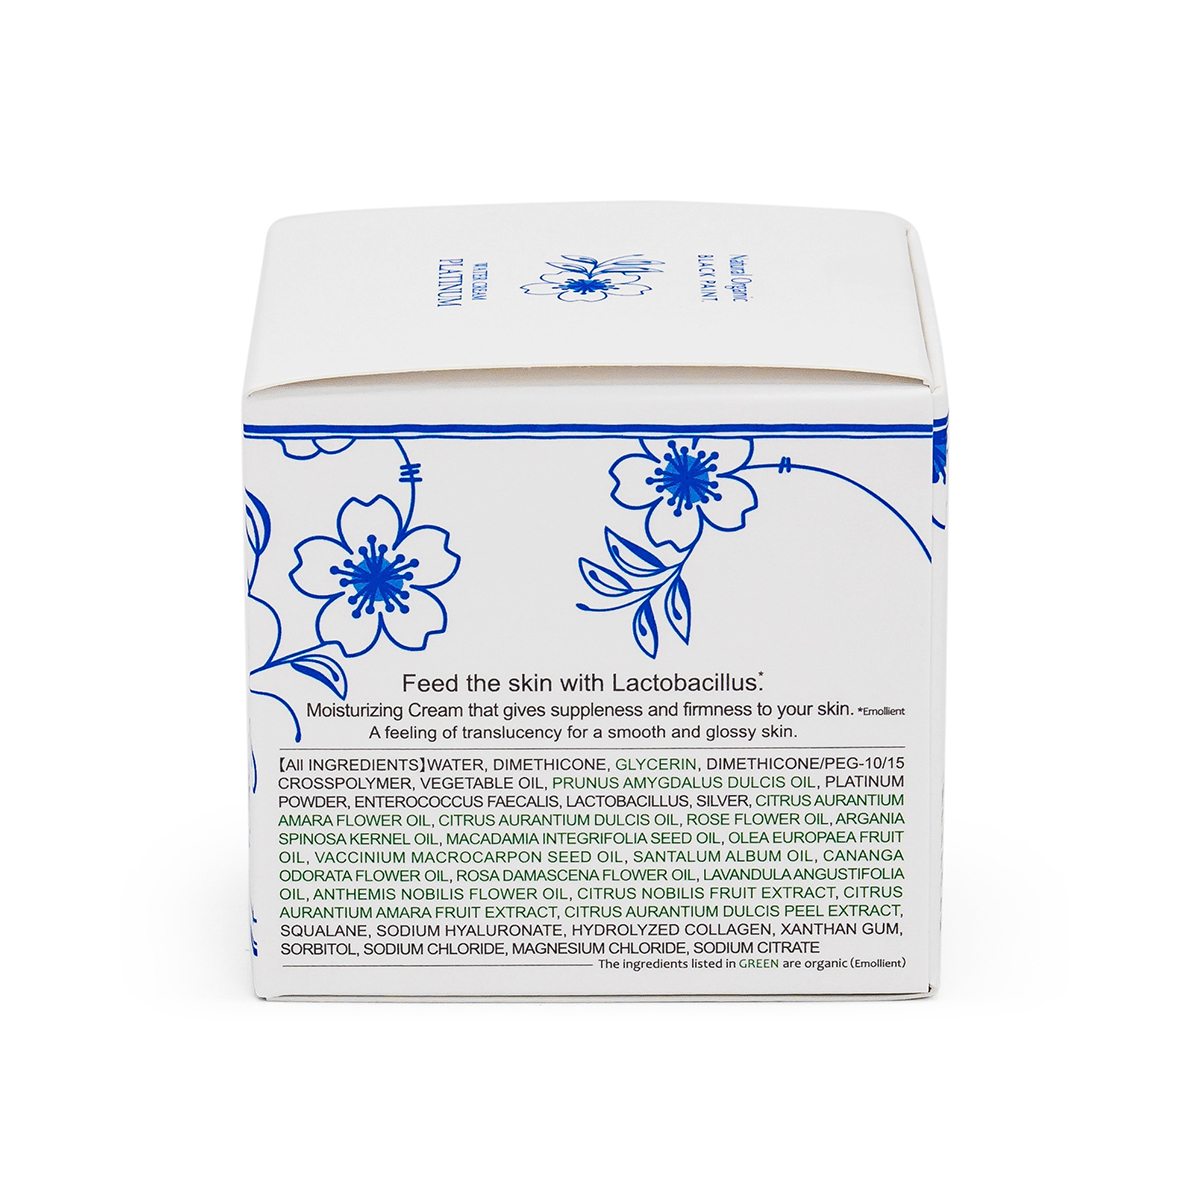 Water Cream Platinum 25g with Human Microbiome - box side 1